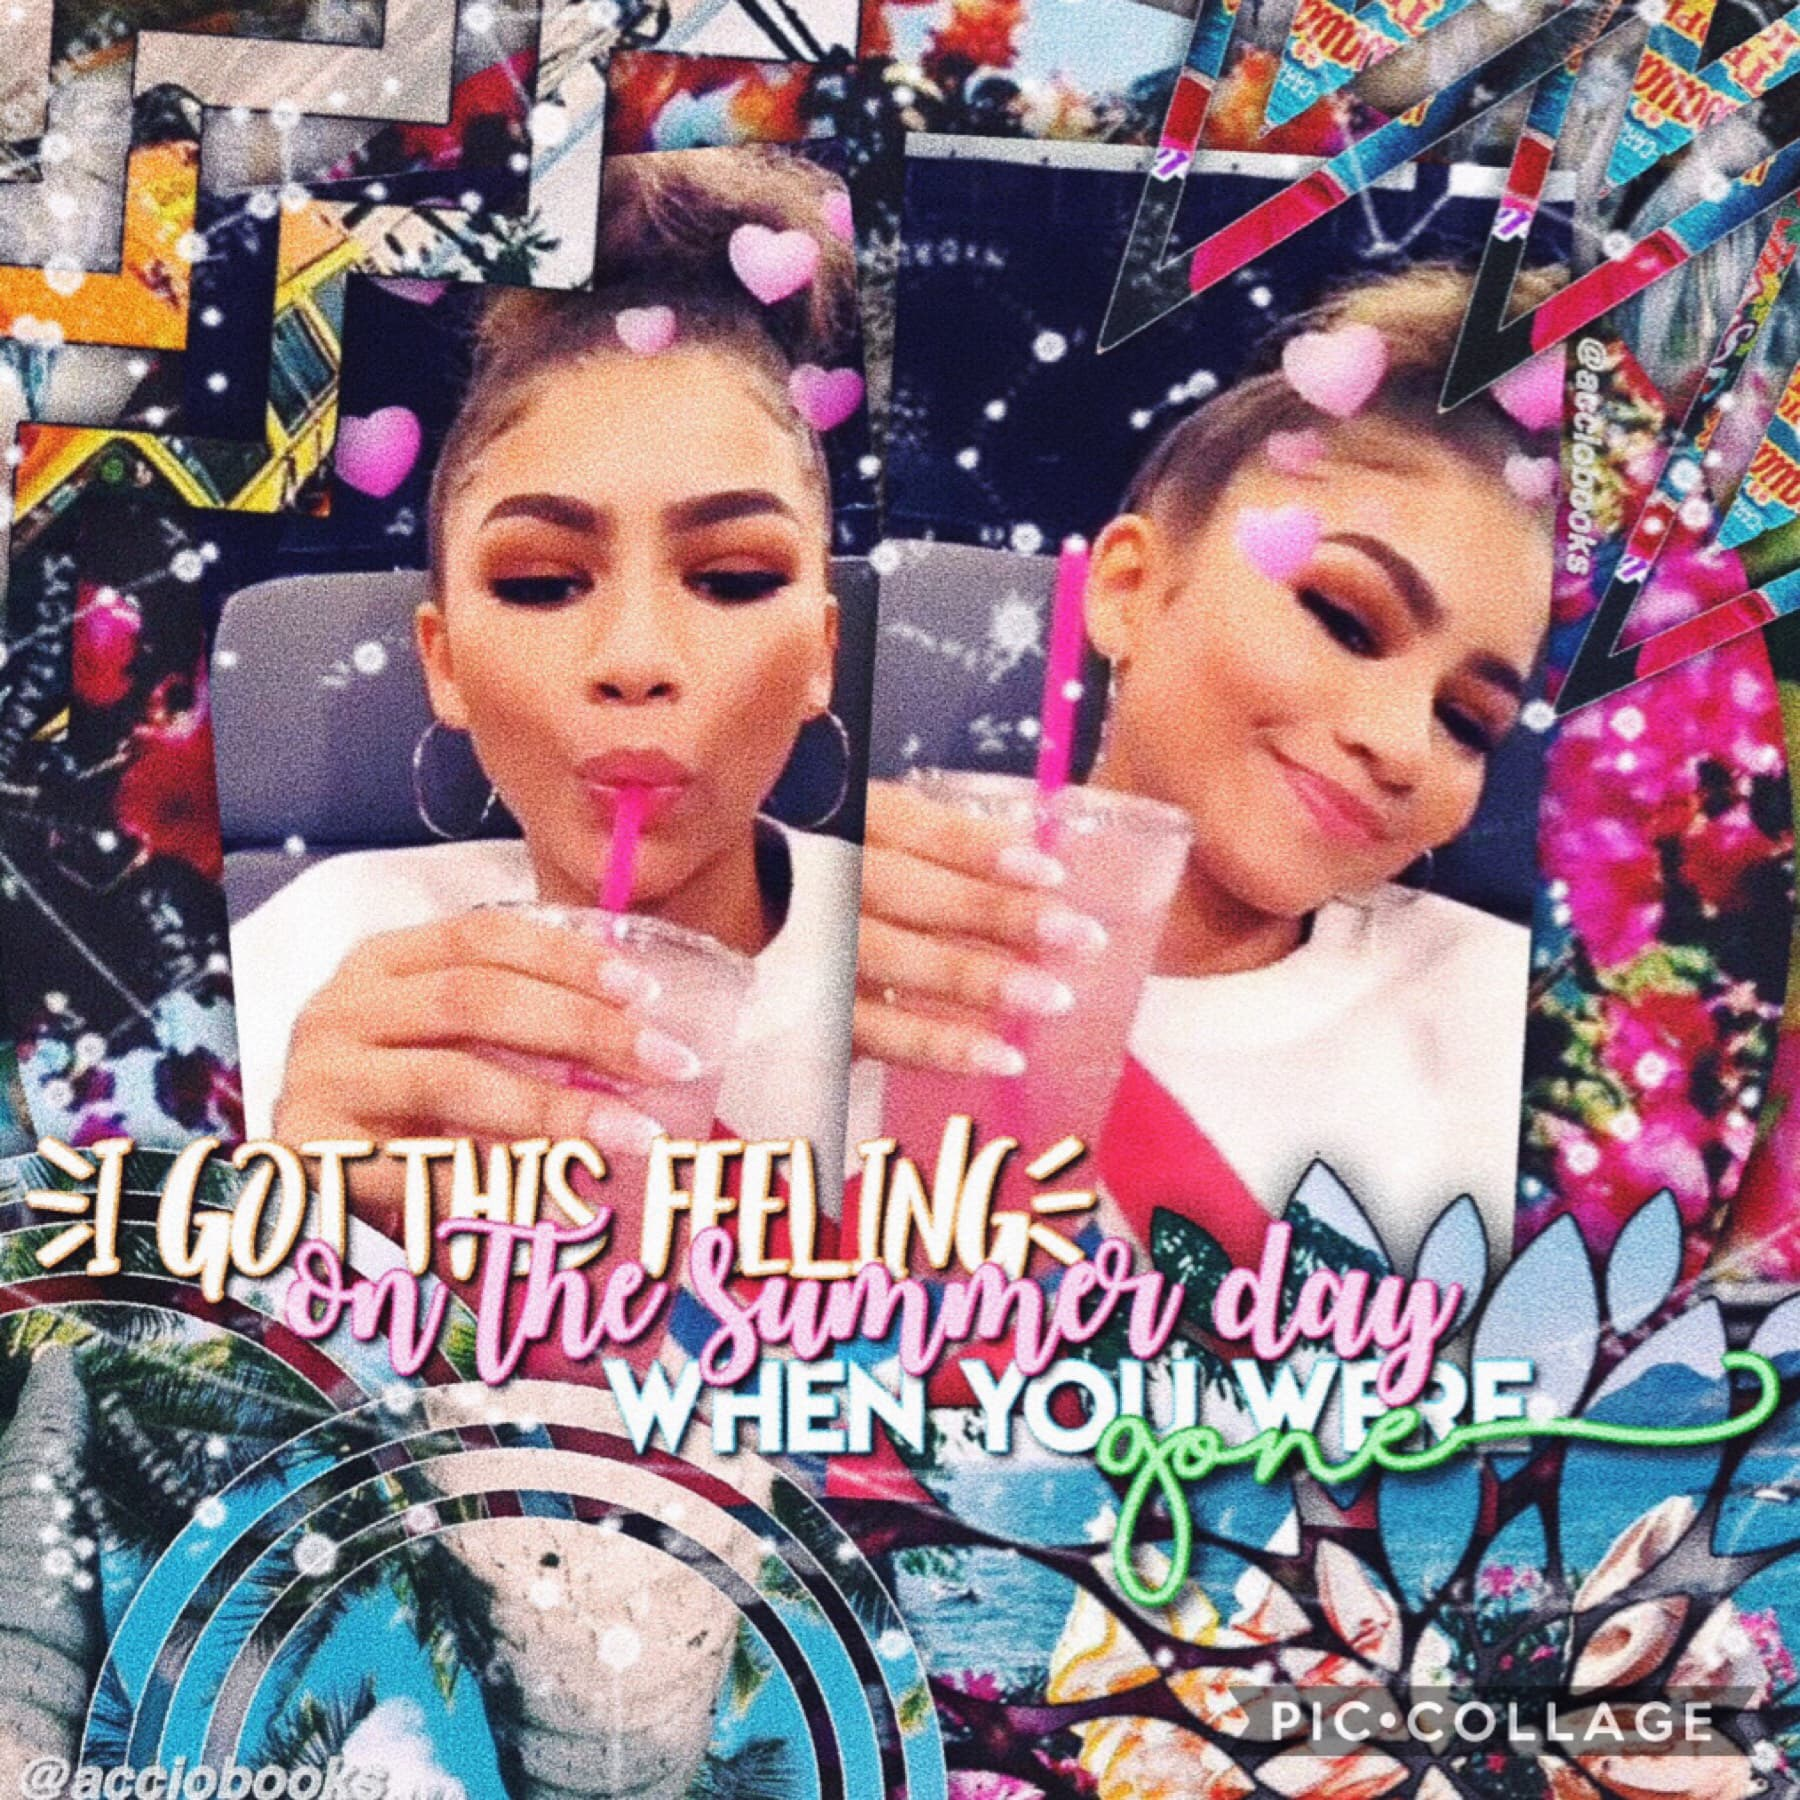 aah I keep being super inactive I'm sorry but here's a zendaya edit💗🌸🌴